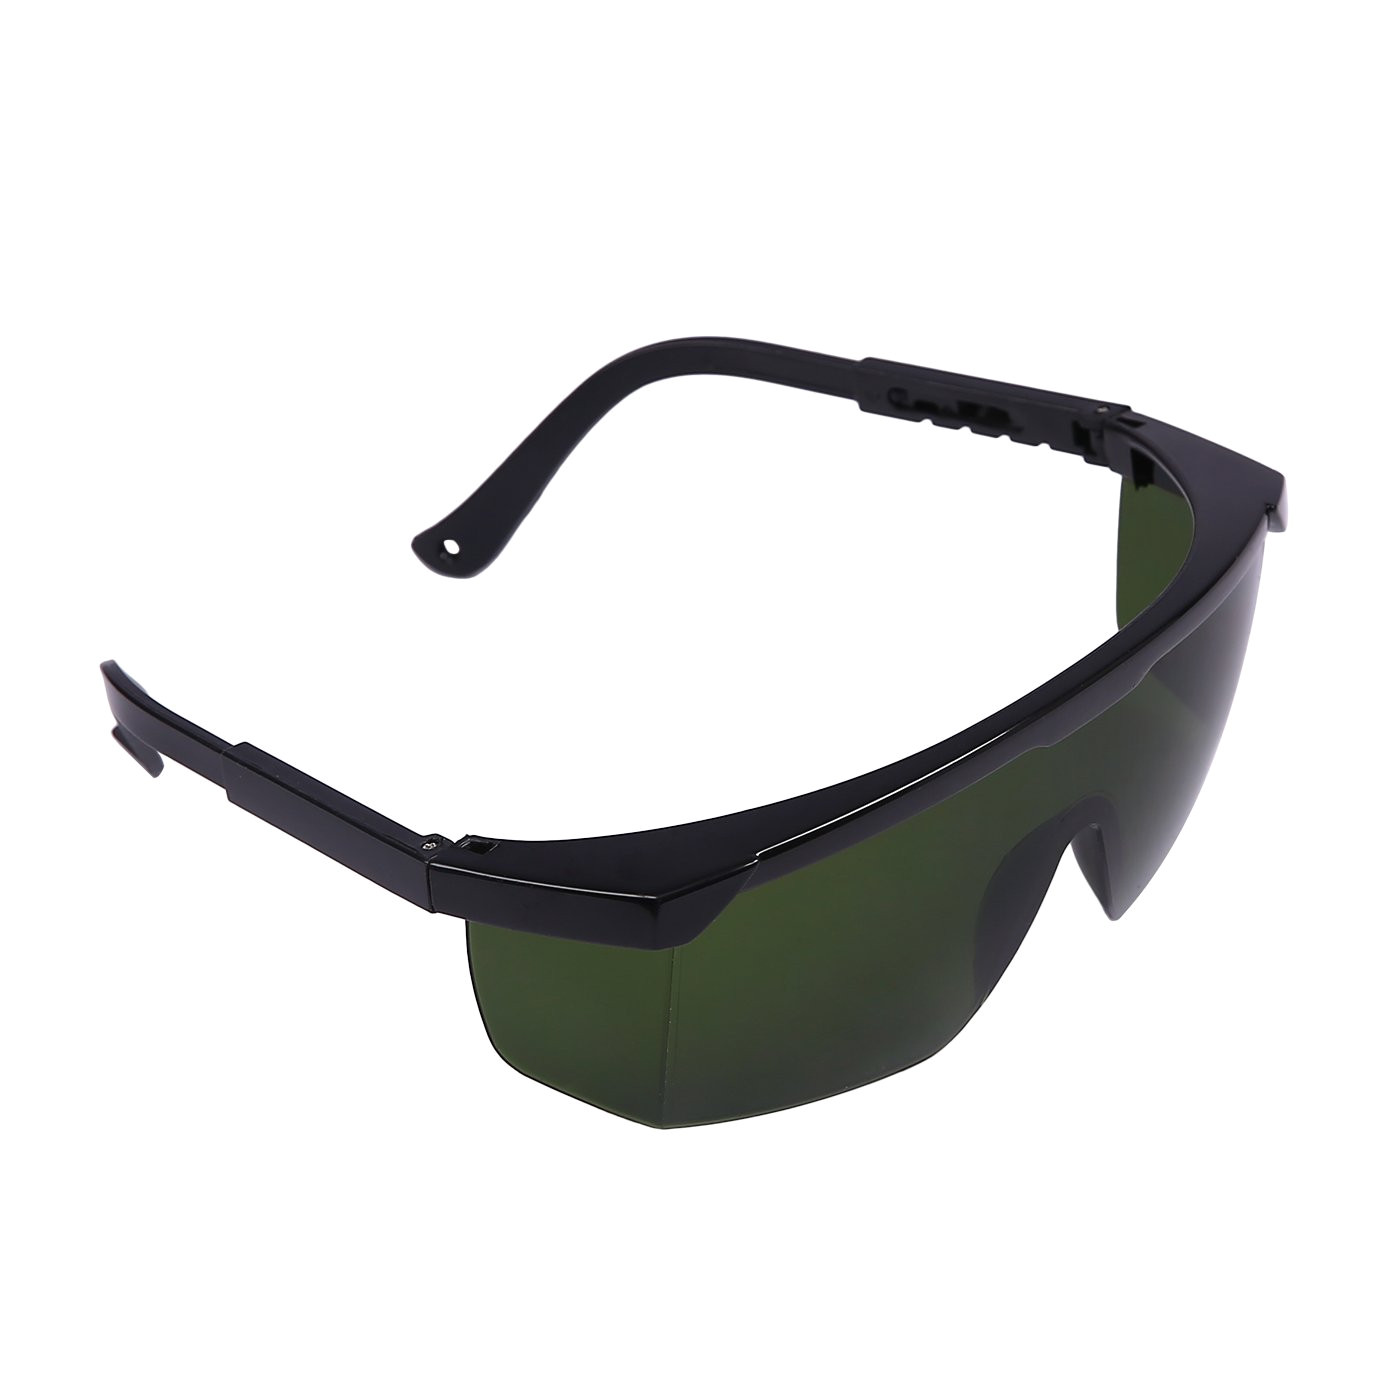 hde laser eye protection safety glasses for red and uv lasers with case green laser safety goggles amazon com